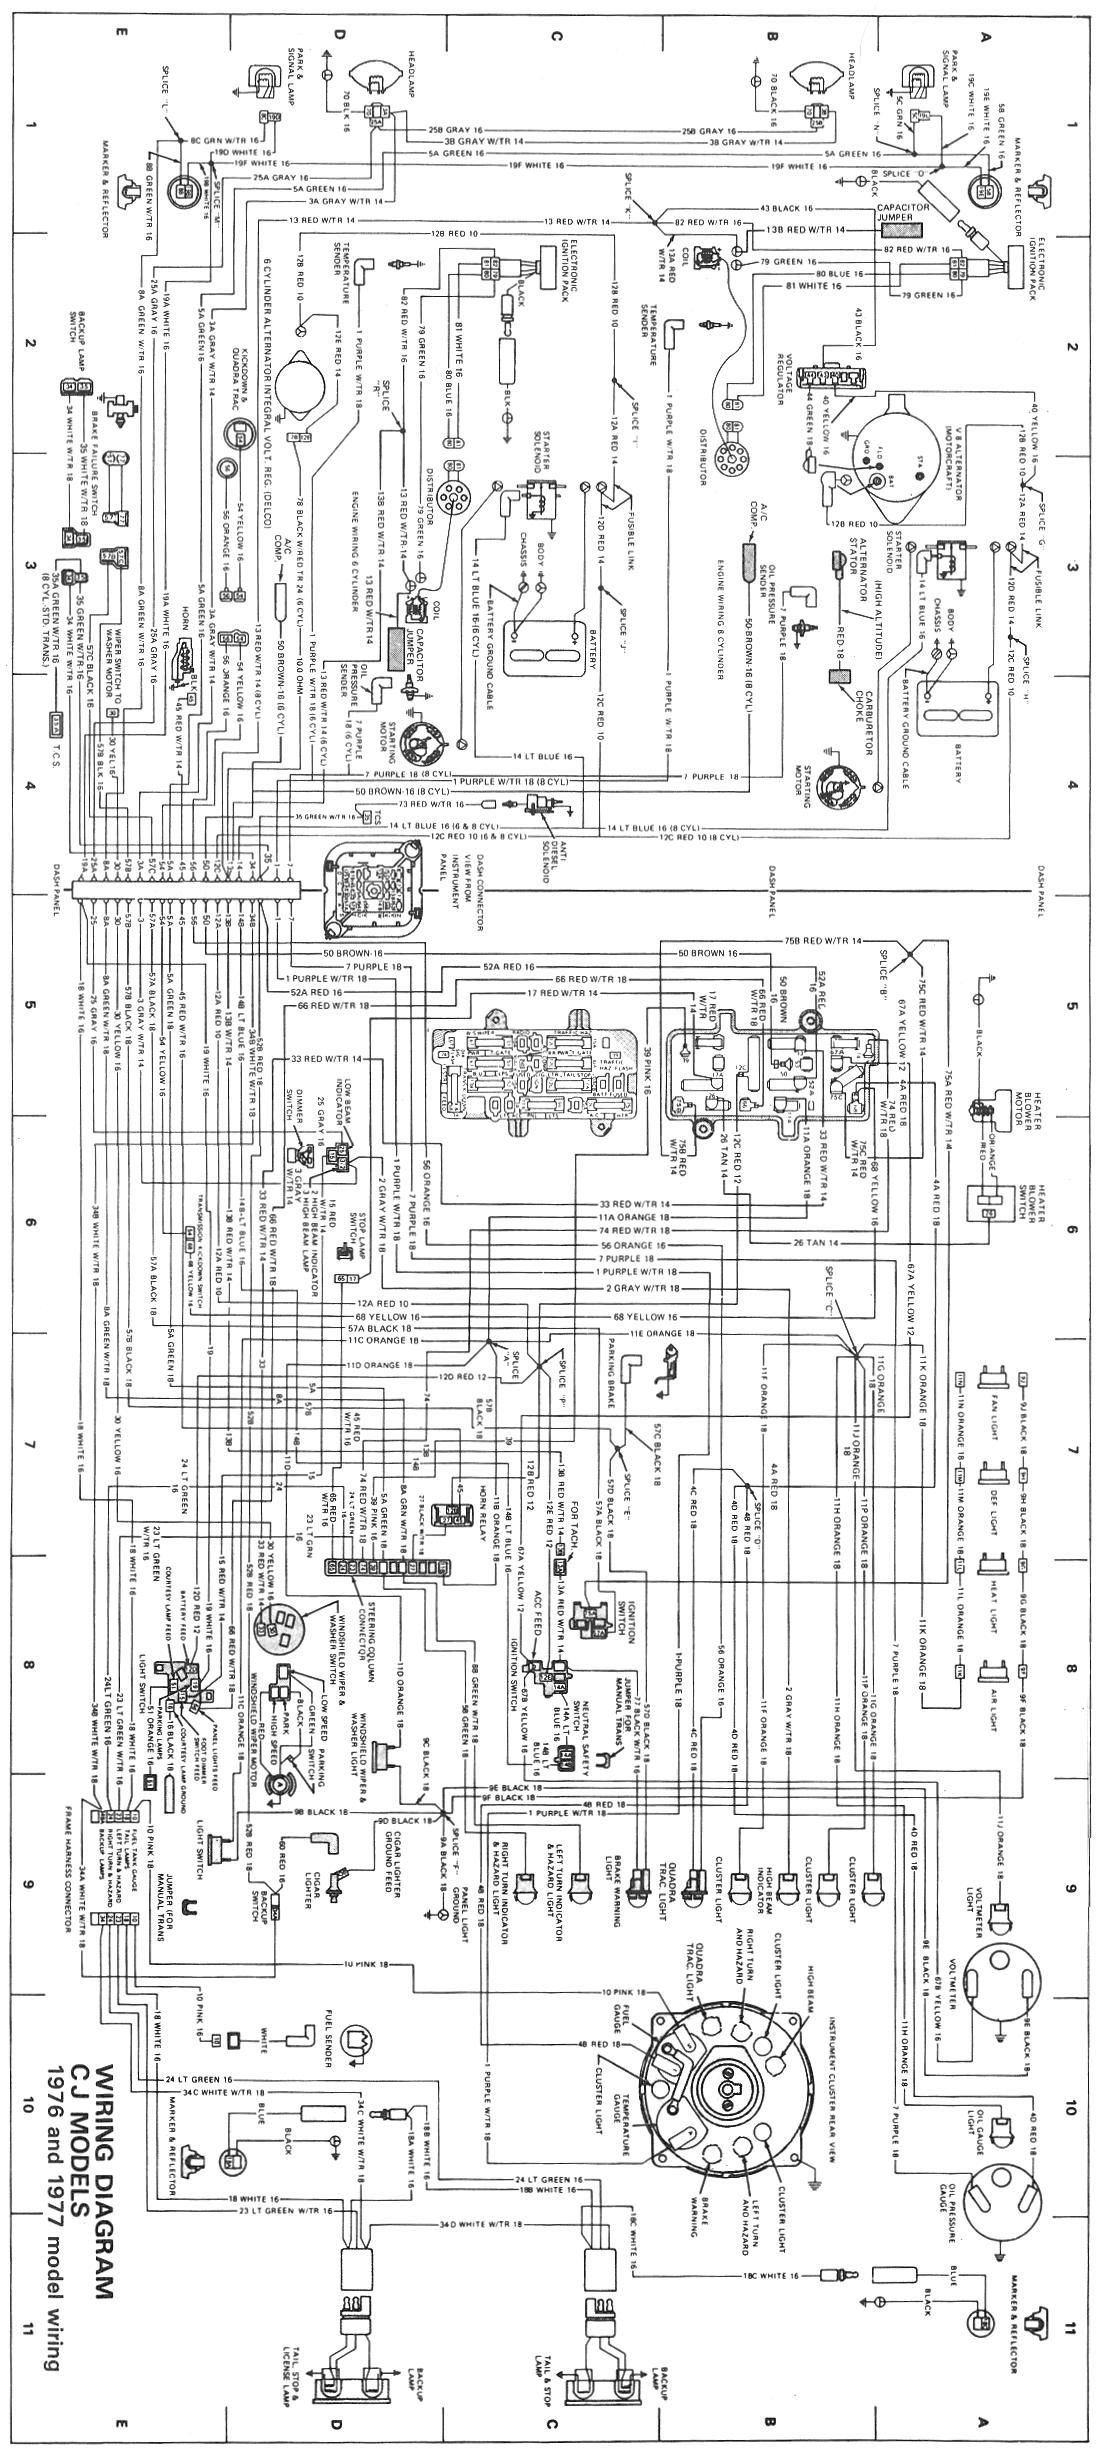 8d25ded6e3673519e155875e09844e5e cj wiring diagram 1976 1977 jpg 1,100�2,459 pixels 1976 jeep cj5 jeep cj5 wiring harness at edmiracle.co